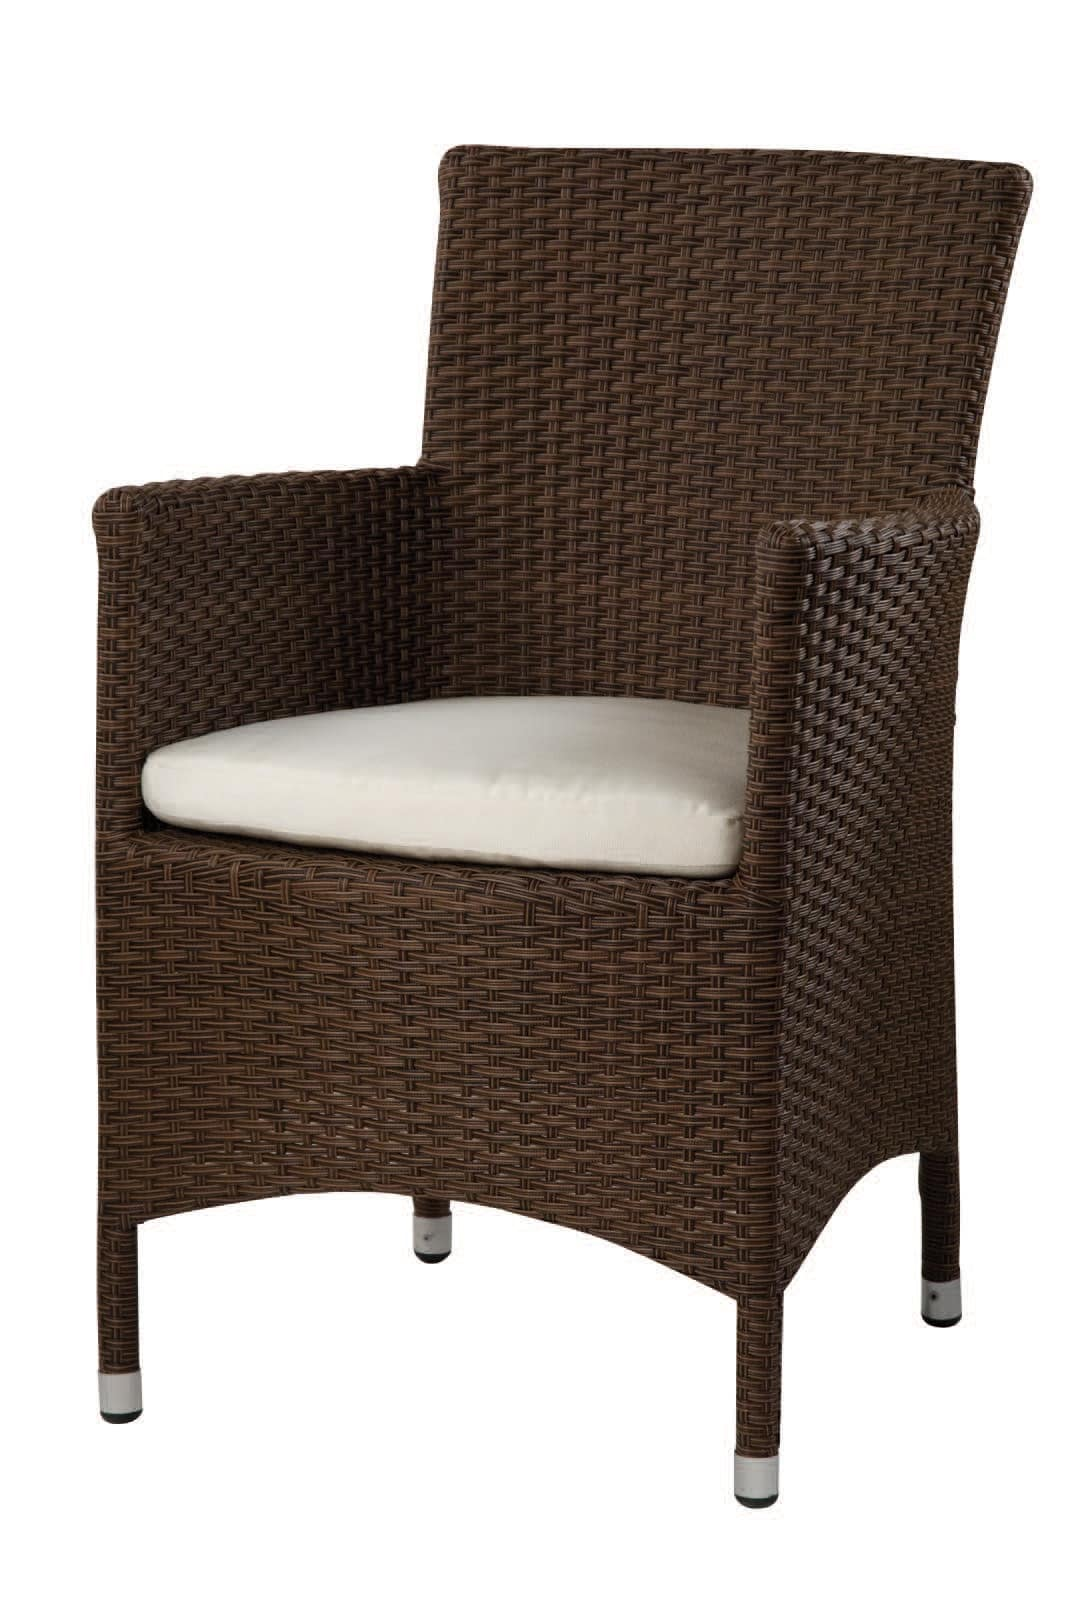 PL 768, Wicker armchair, for ice cream parlors and restaurants